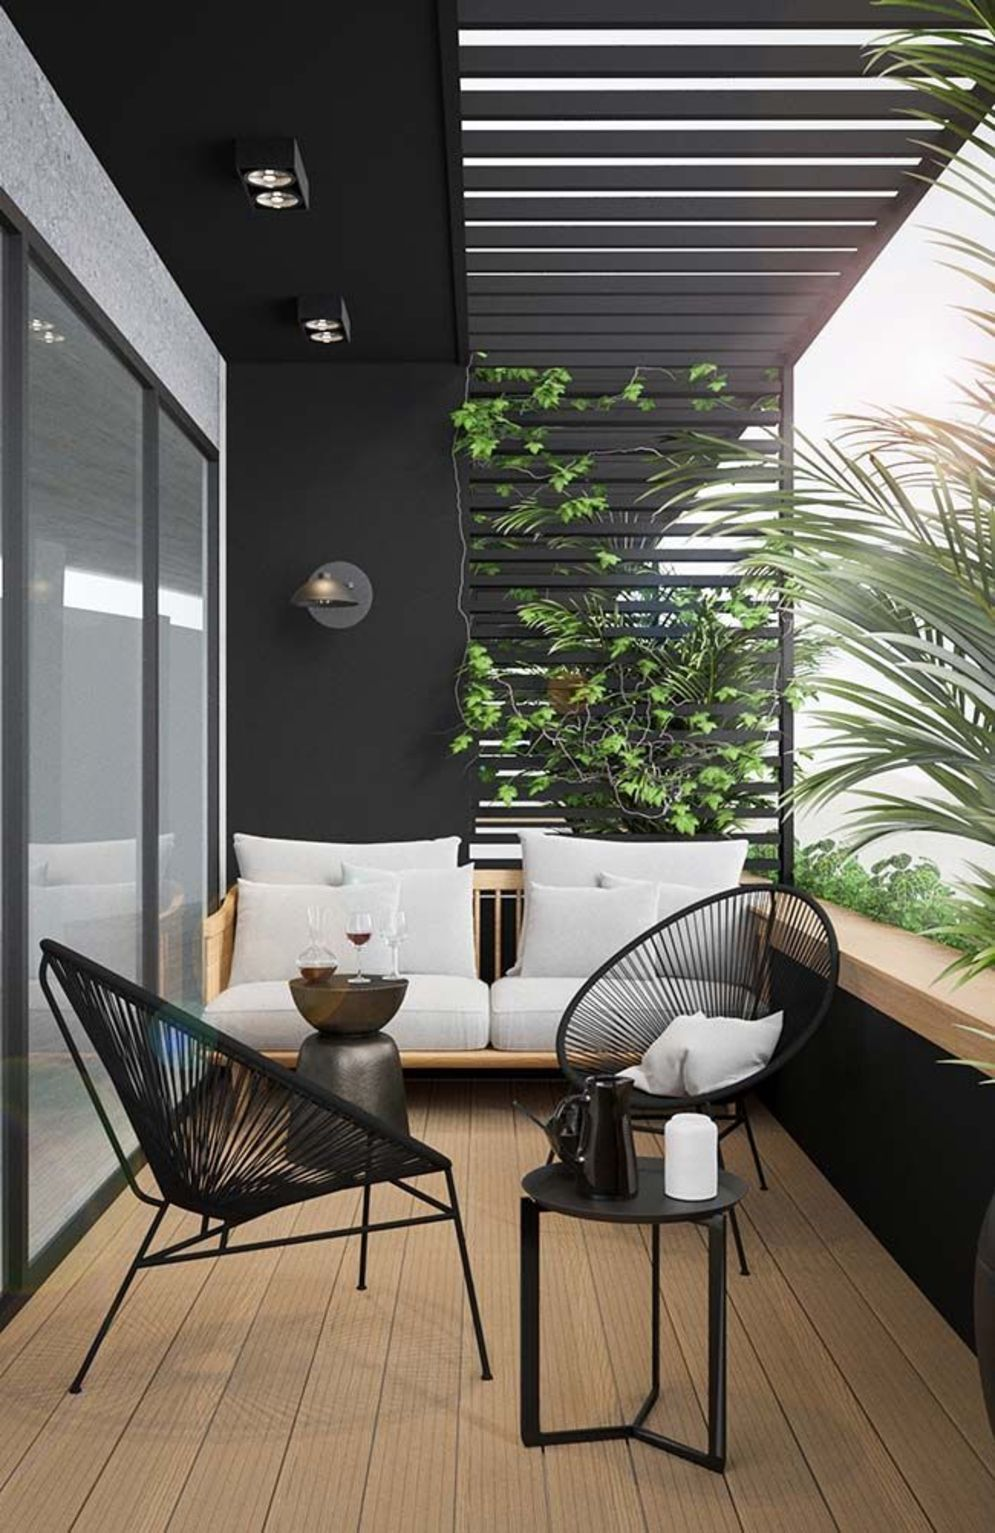 Brilliant apartment balcony ideas converted into cozy living space Image 4